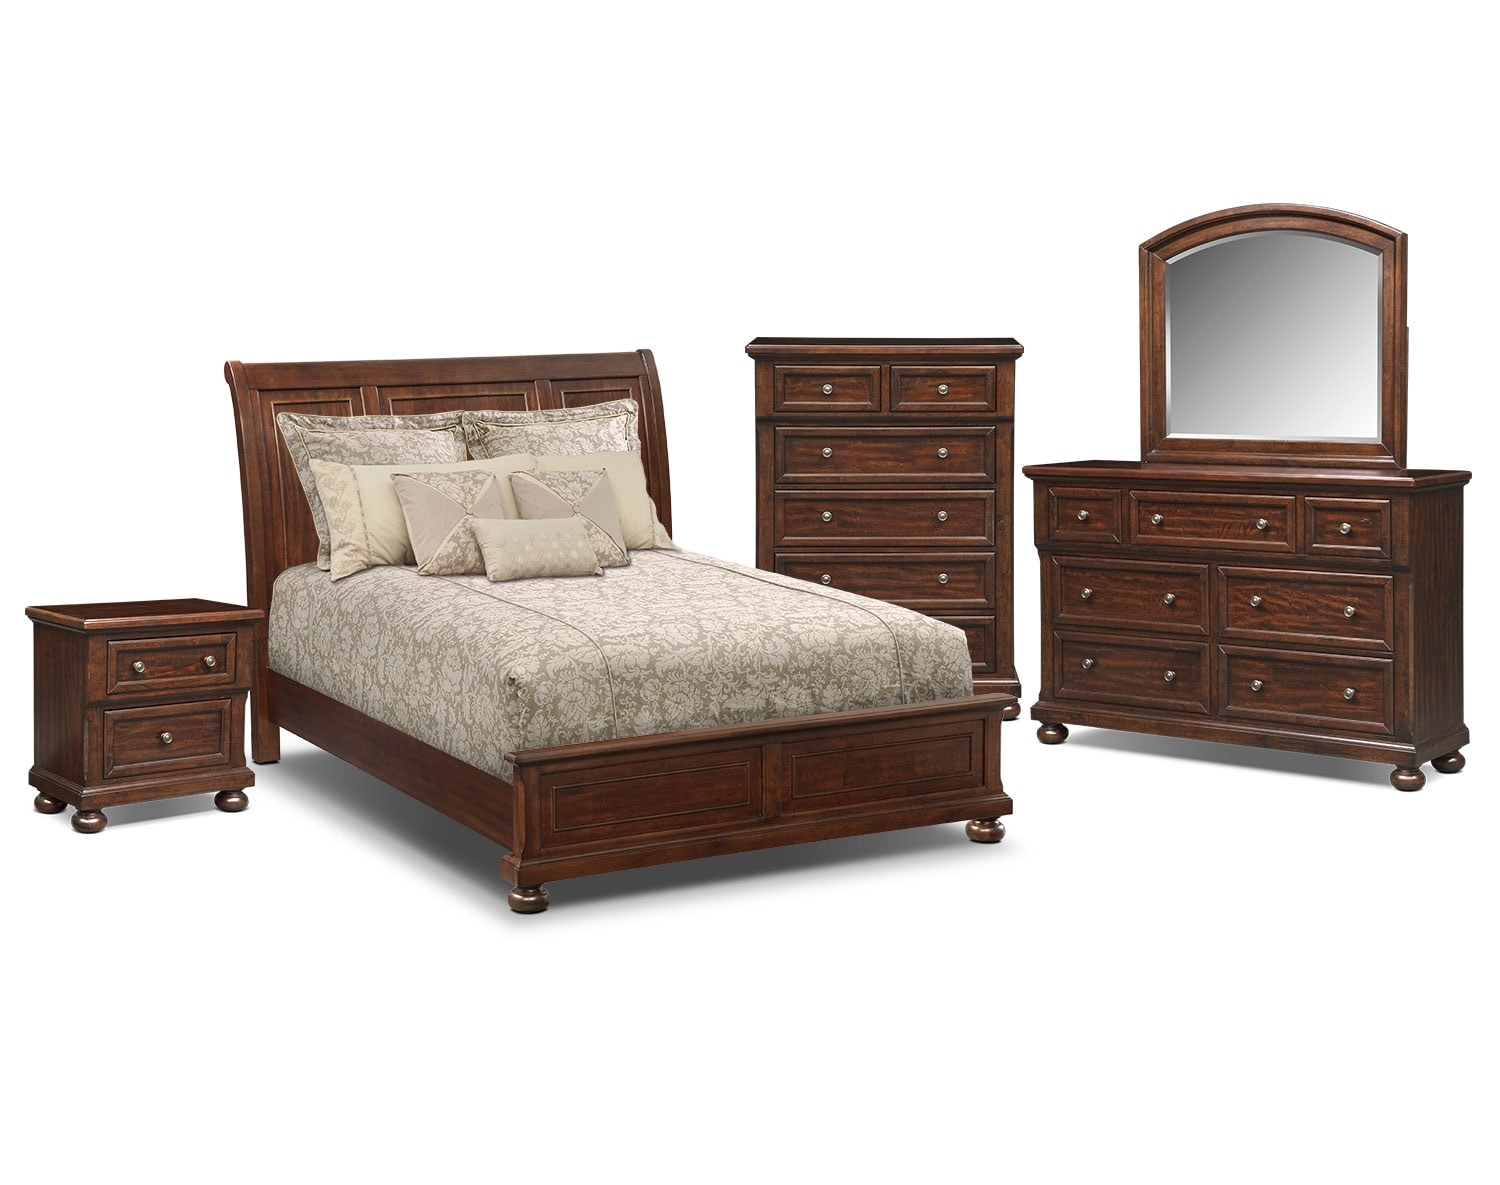 The Hanover Panel Bedroom Collection - Cherry